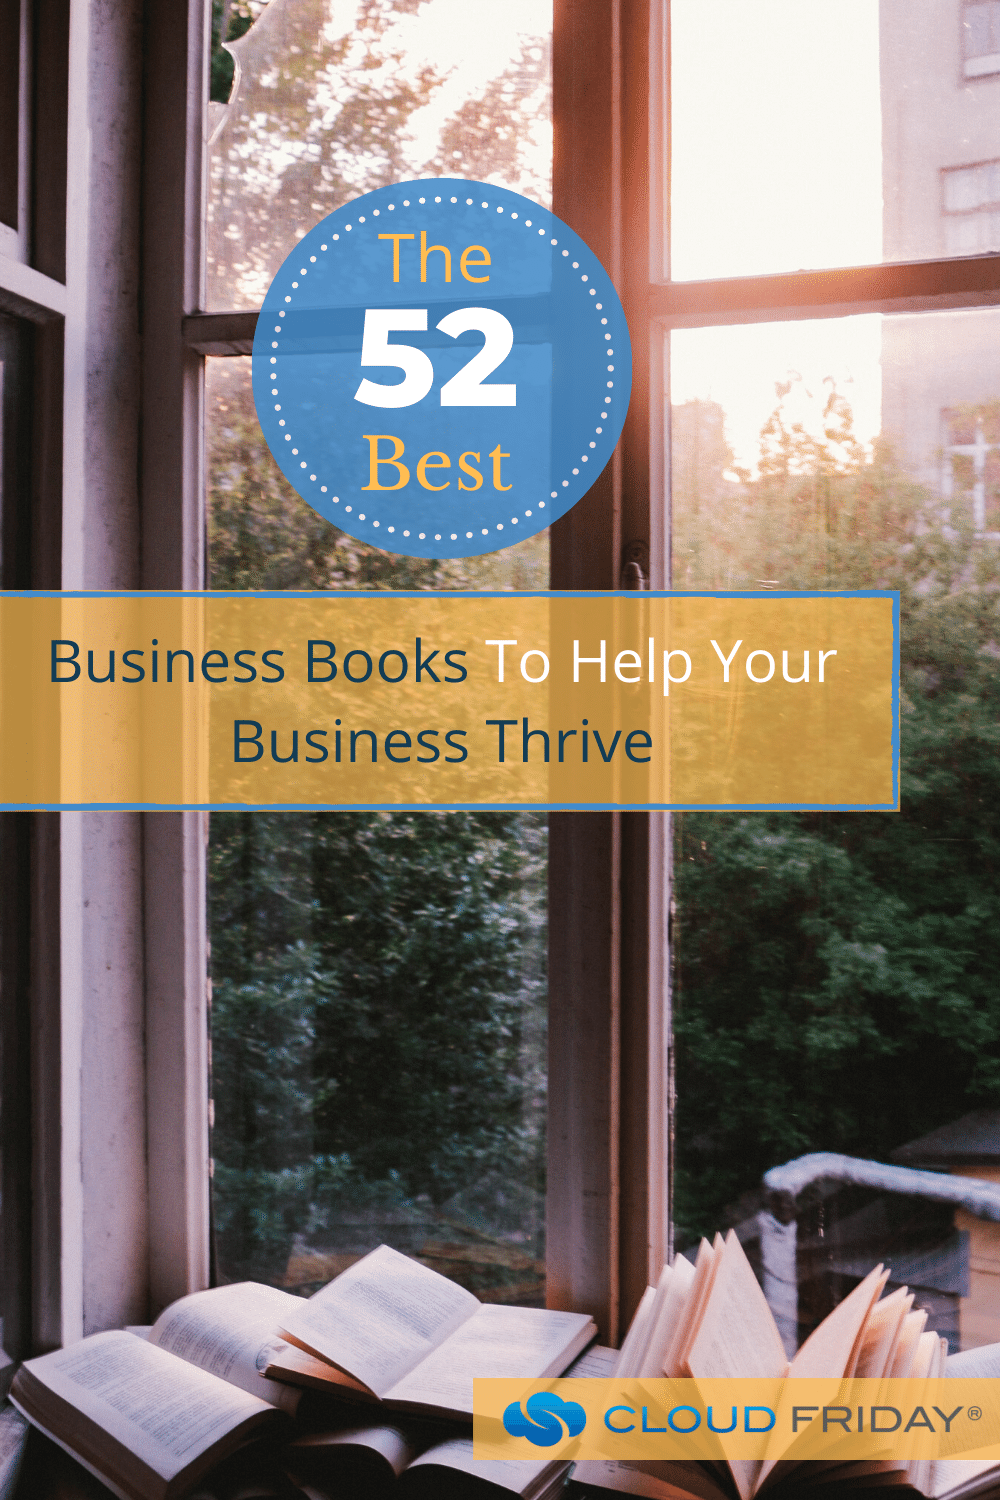 The 52 Best Business Books To Help Your Business Thrive